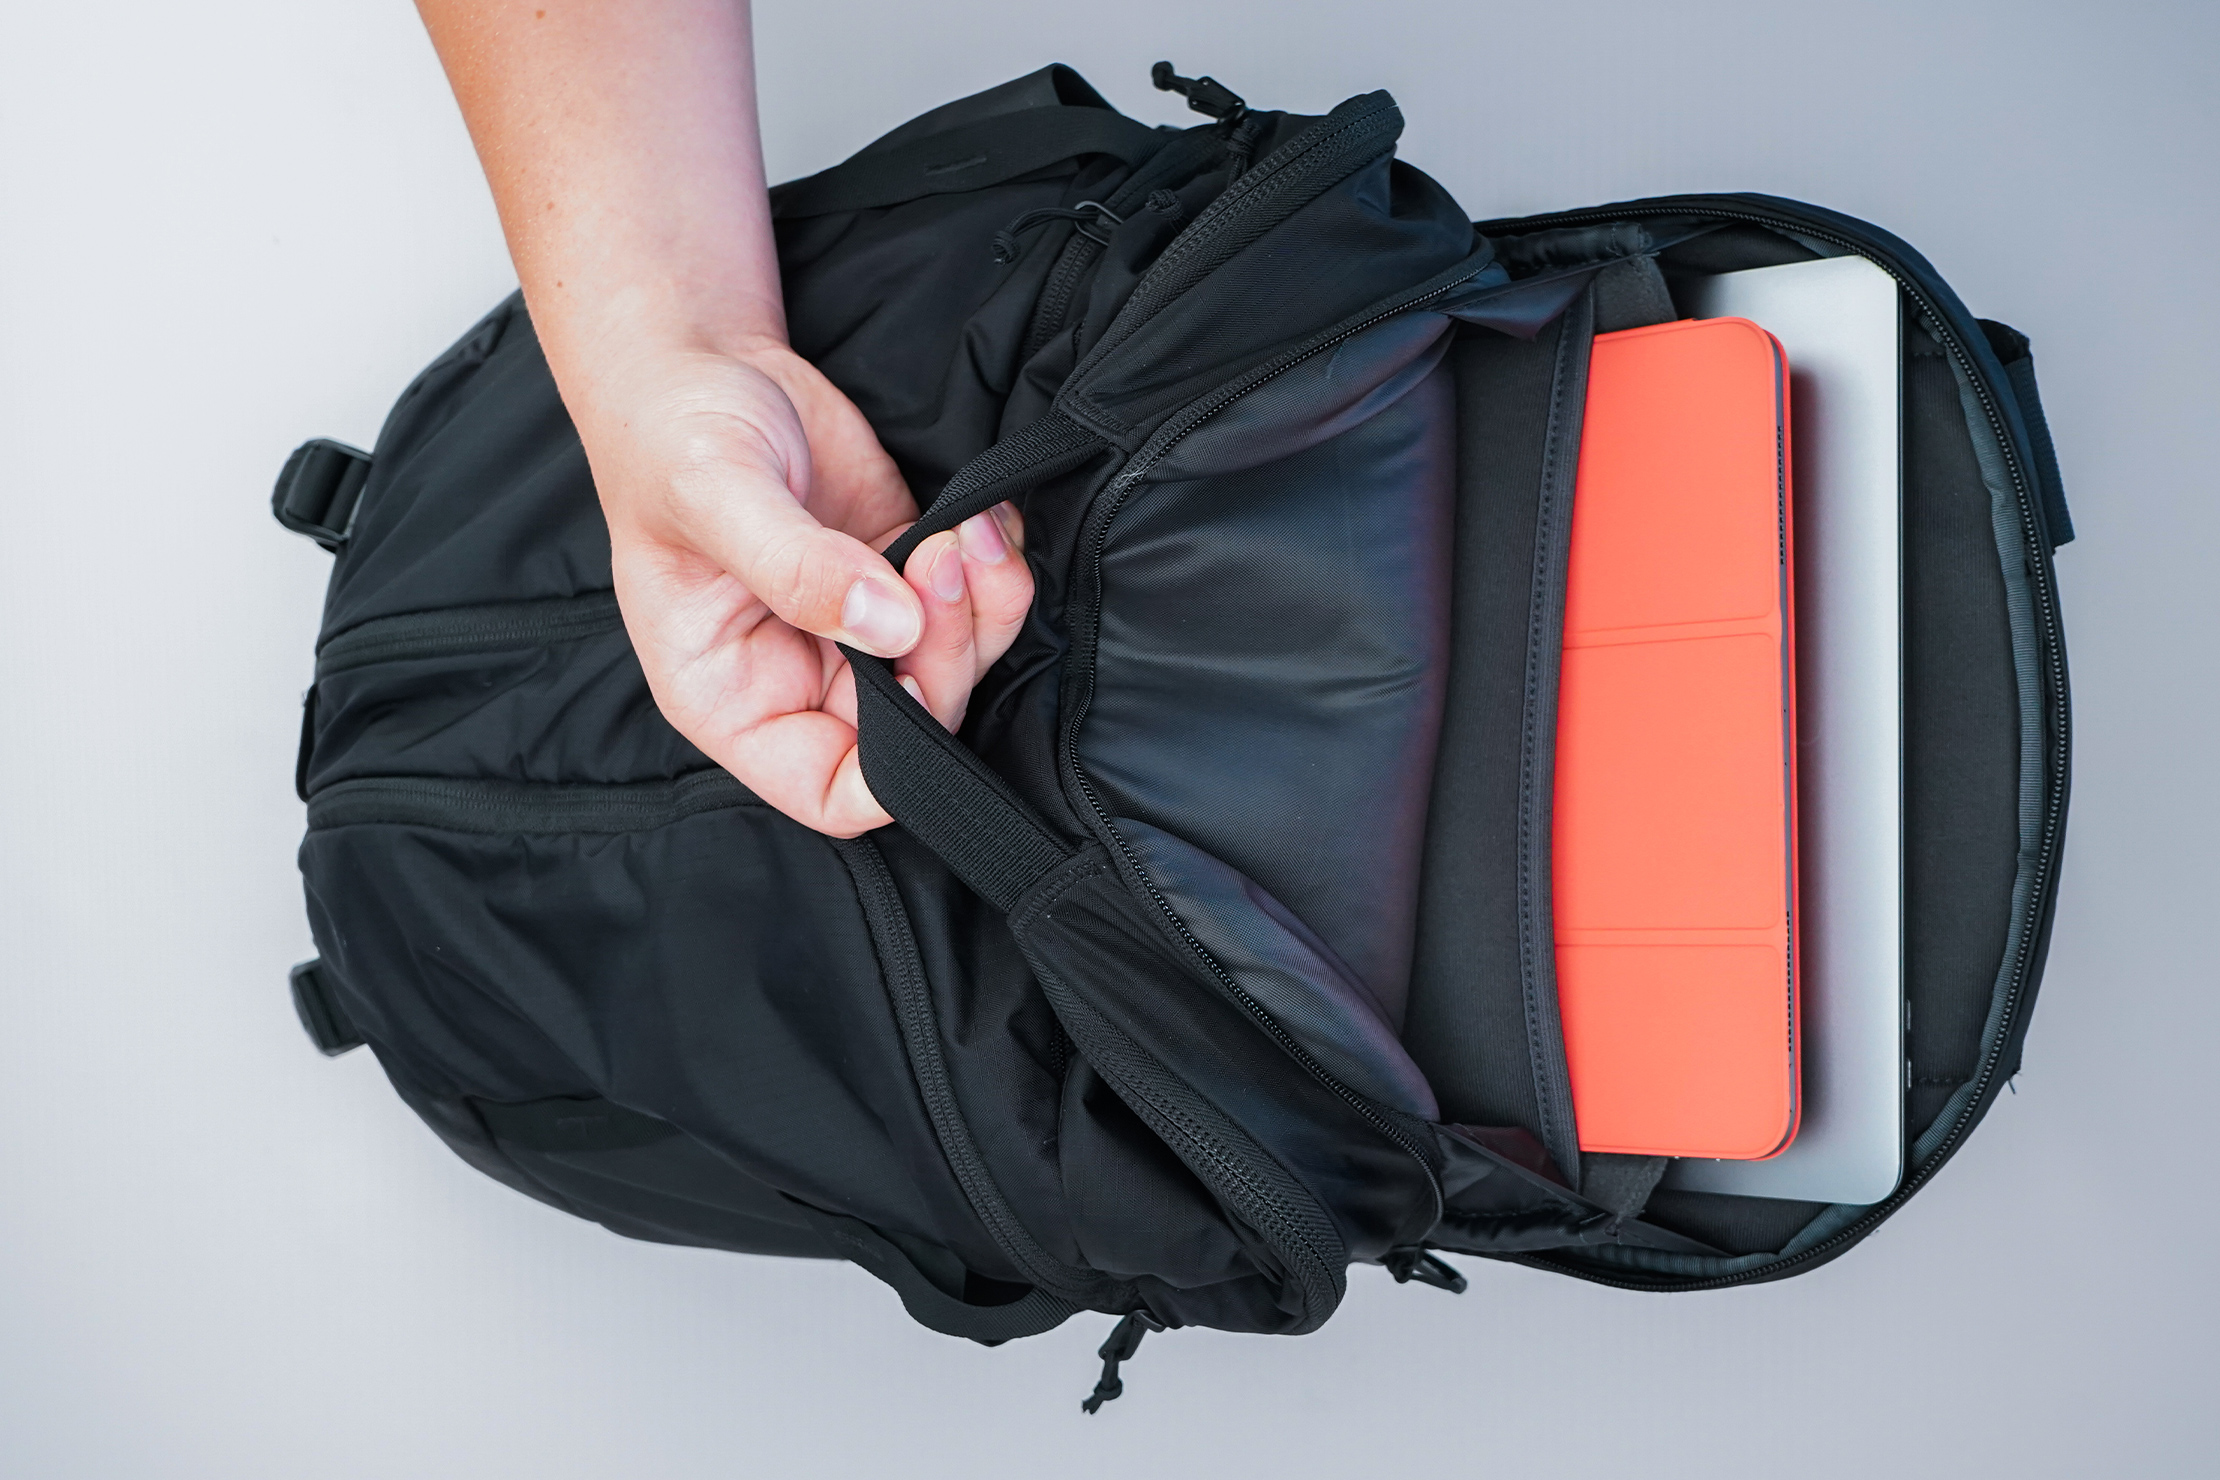 The North Face Surge Backpack laptop compartment